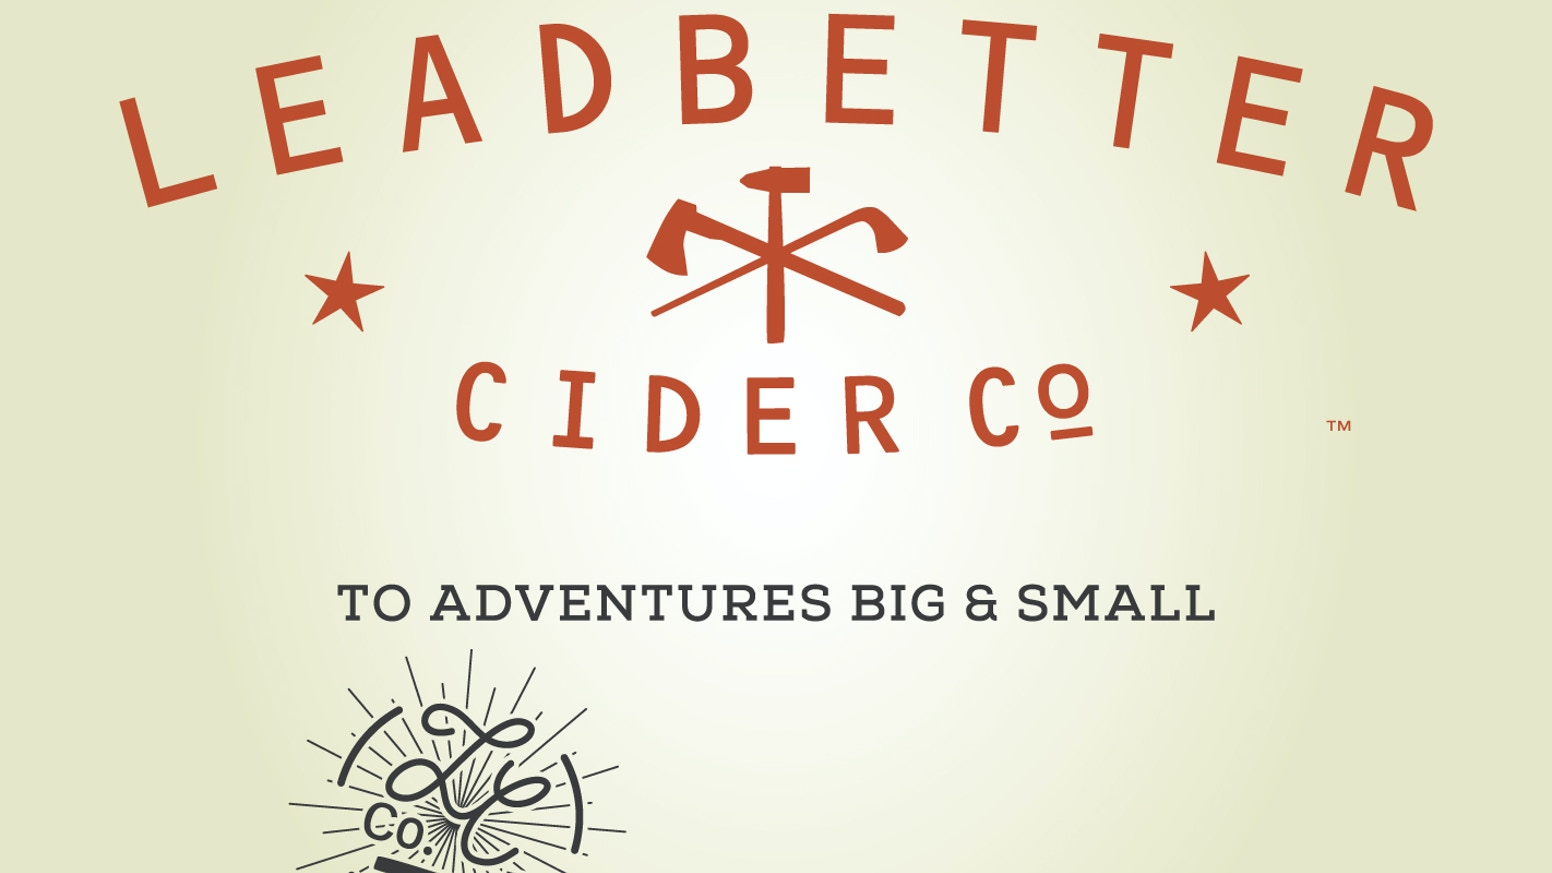 We are a family owned and operated hard cider company in Boise, Idaho. Opening Summer 2015!